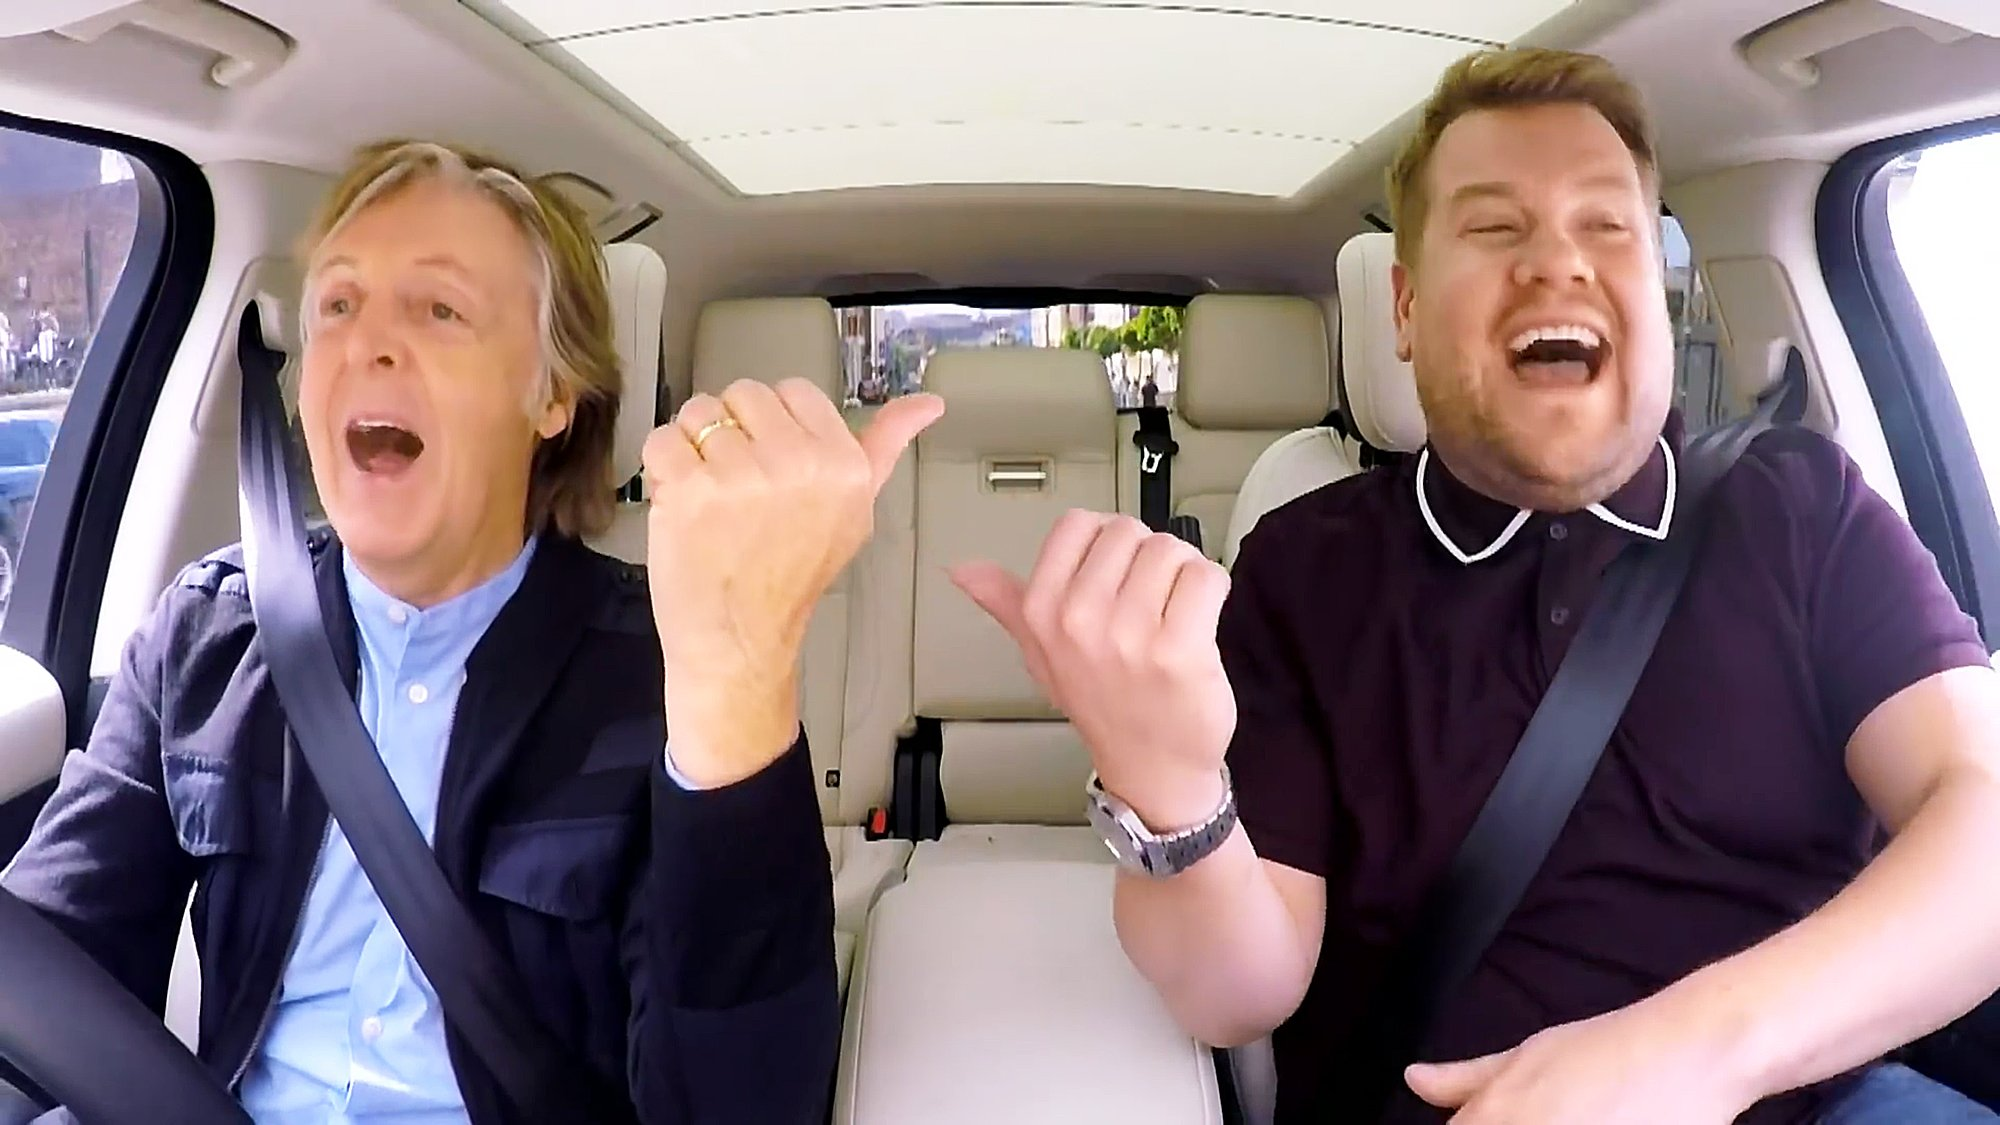 Reloaded twaddle – RT @KawaiPianos: Enjoy an outing with James Corden @JKCorden and Sir Paul McCart...